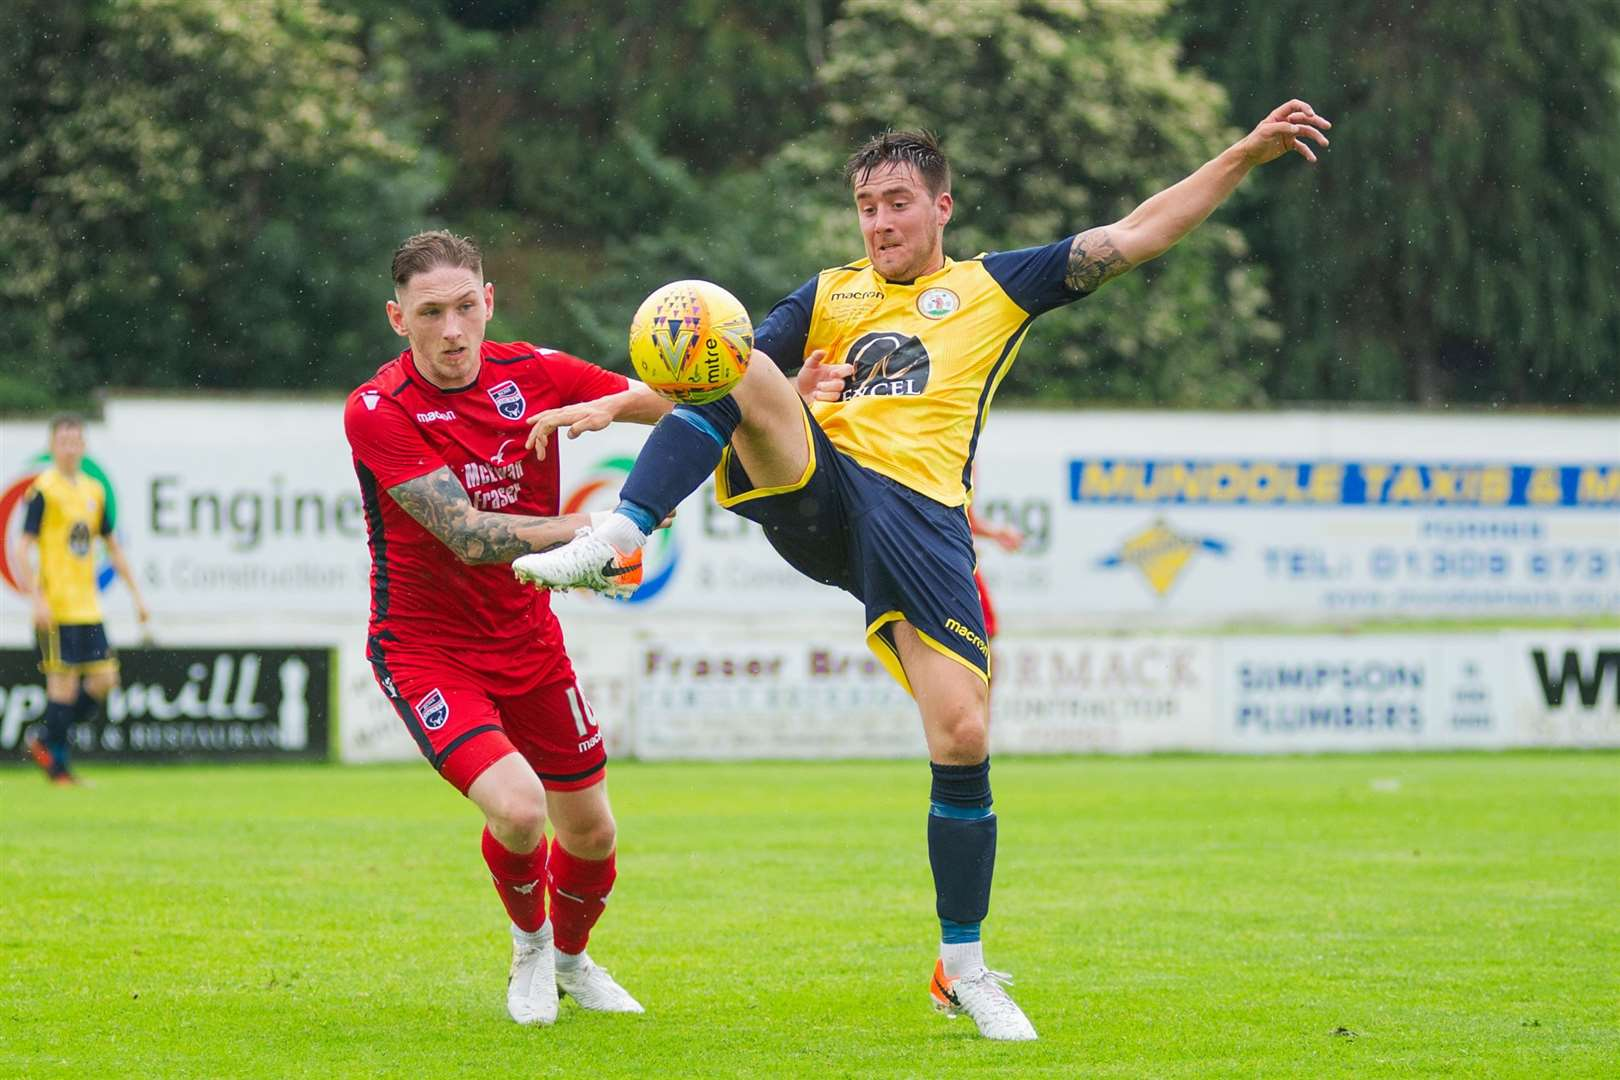 Forres Mechanics' midfielder Martin Groat scored twice in the demolition of Elgin's under 20s.